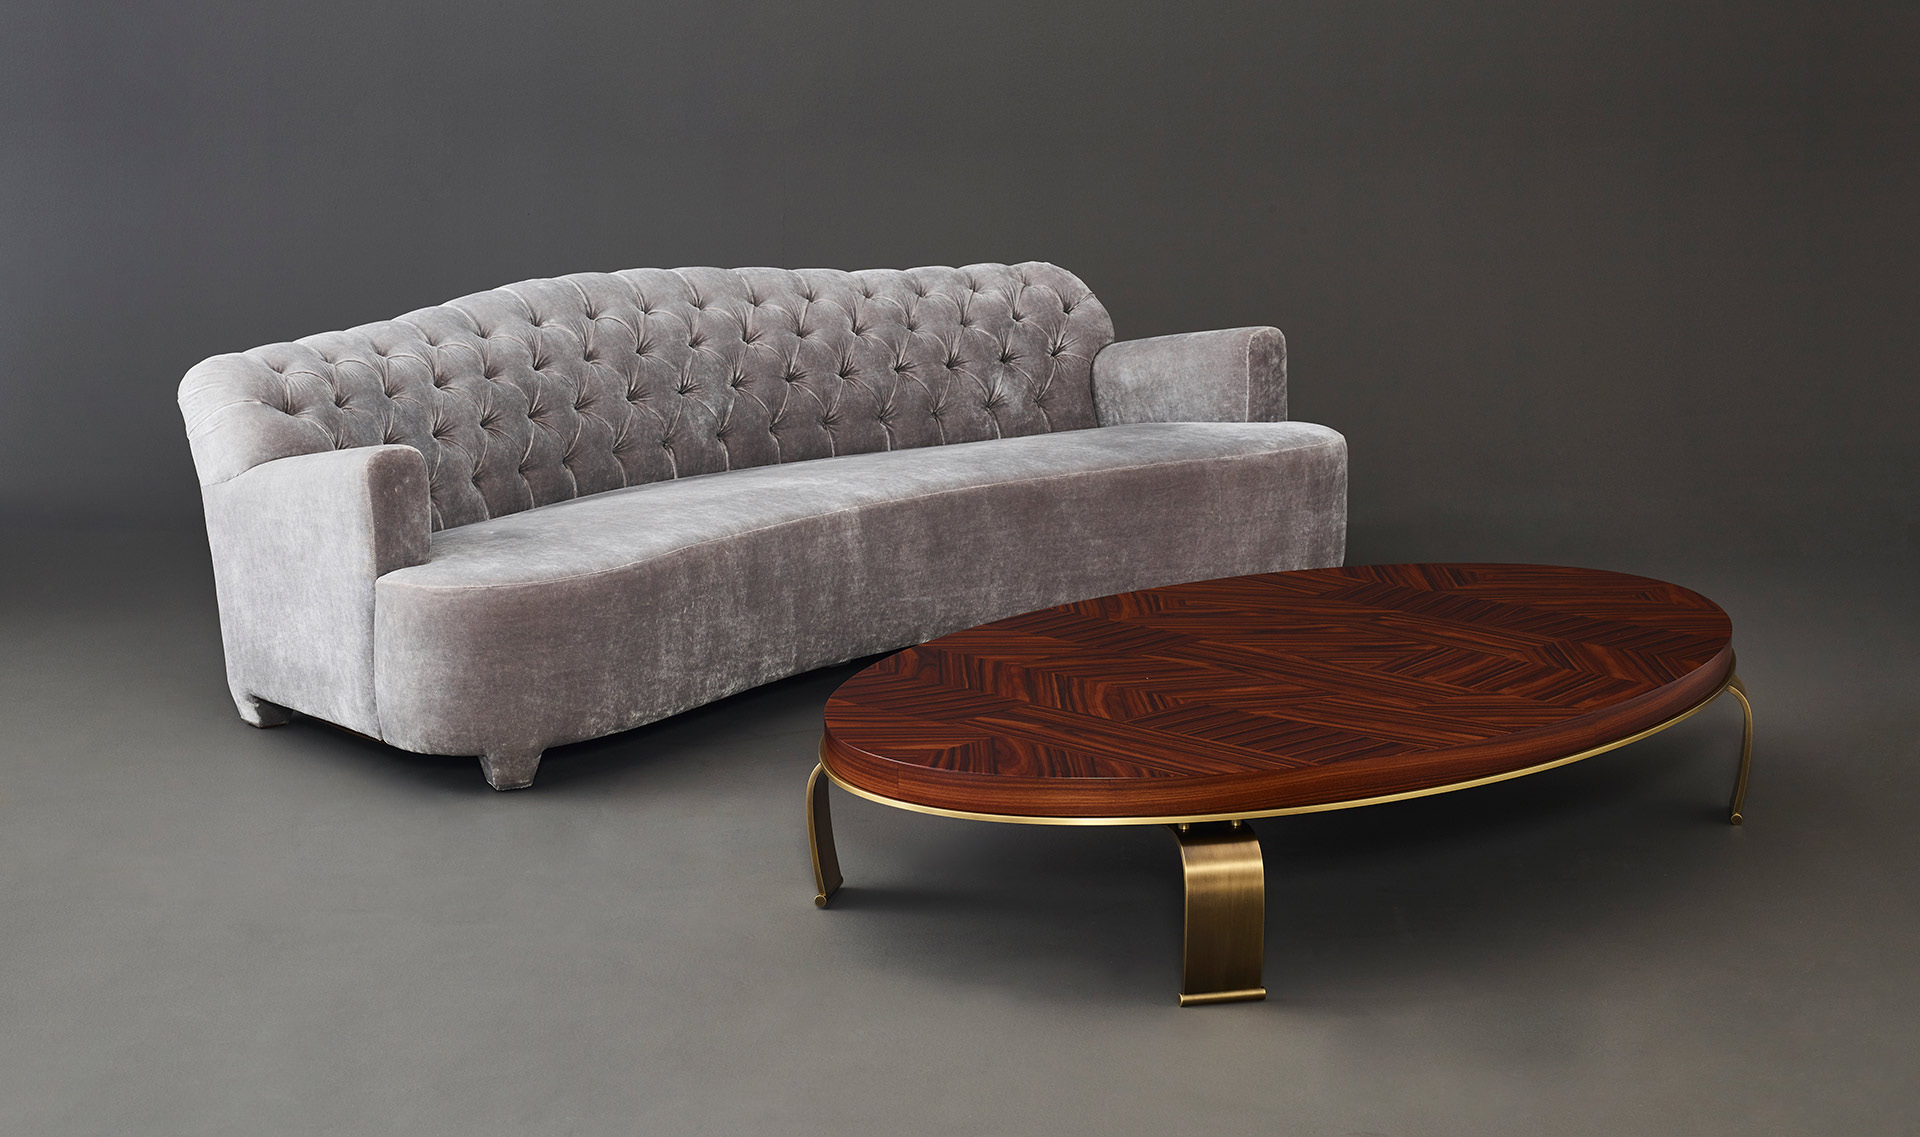 Sumo Is An Oval Or Rectangular Coffee Table With Wooden Top And Bronze Legs From